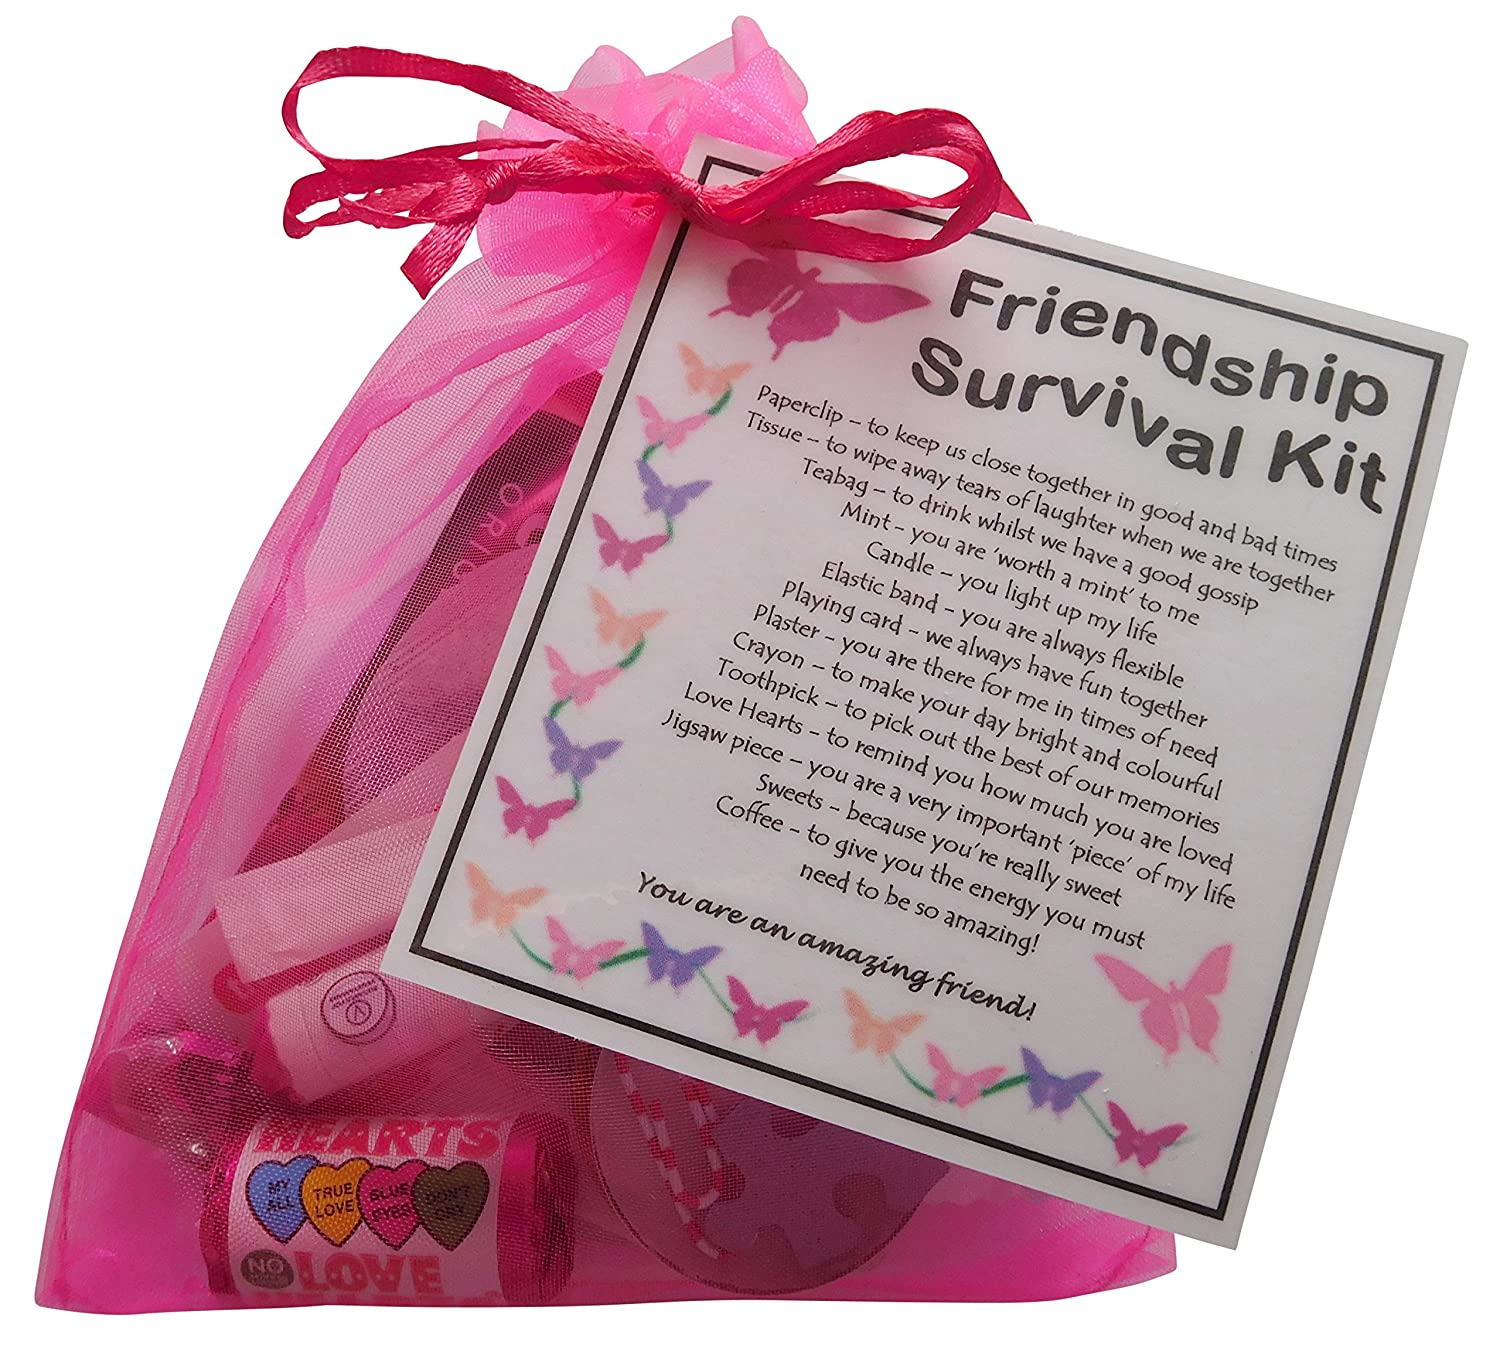 SMILE GIFTS UK Friendship Gift Survival Kit Great Friend For Birthday Or Christmas Ideal BFF